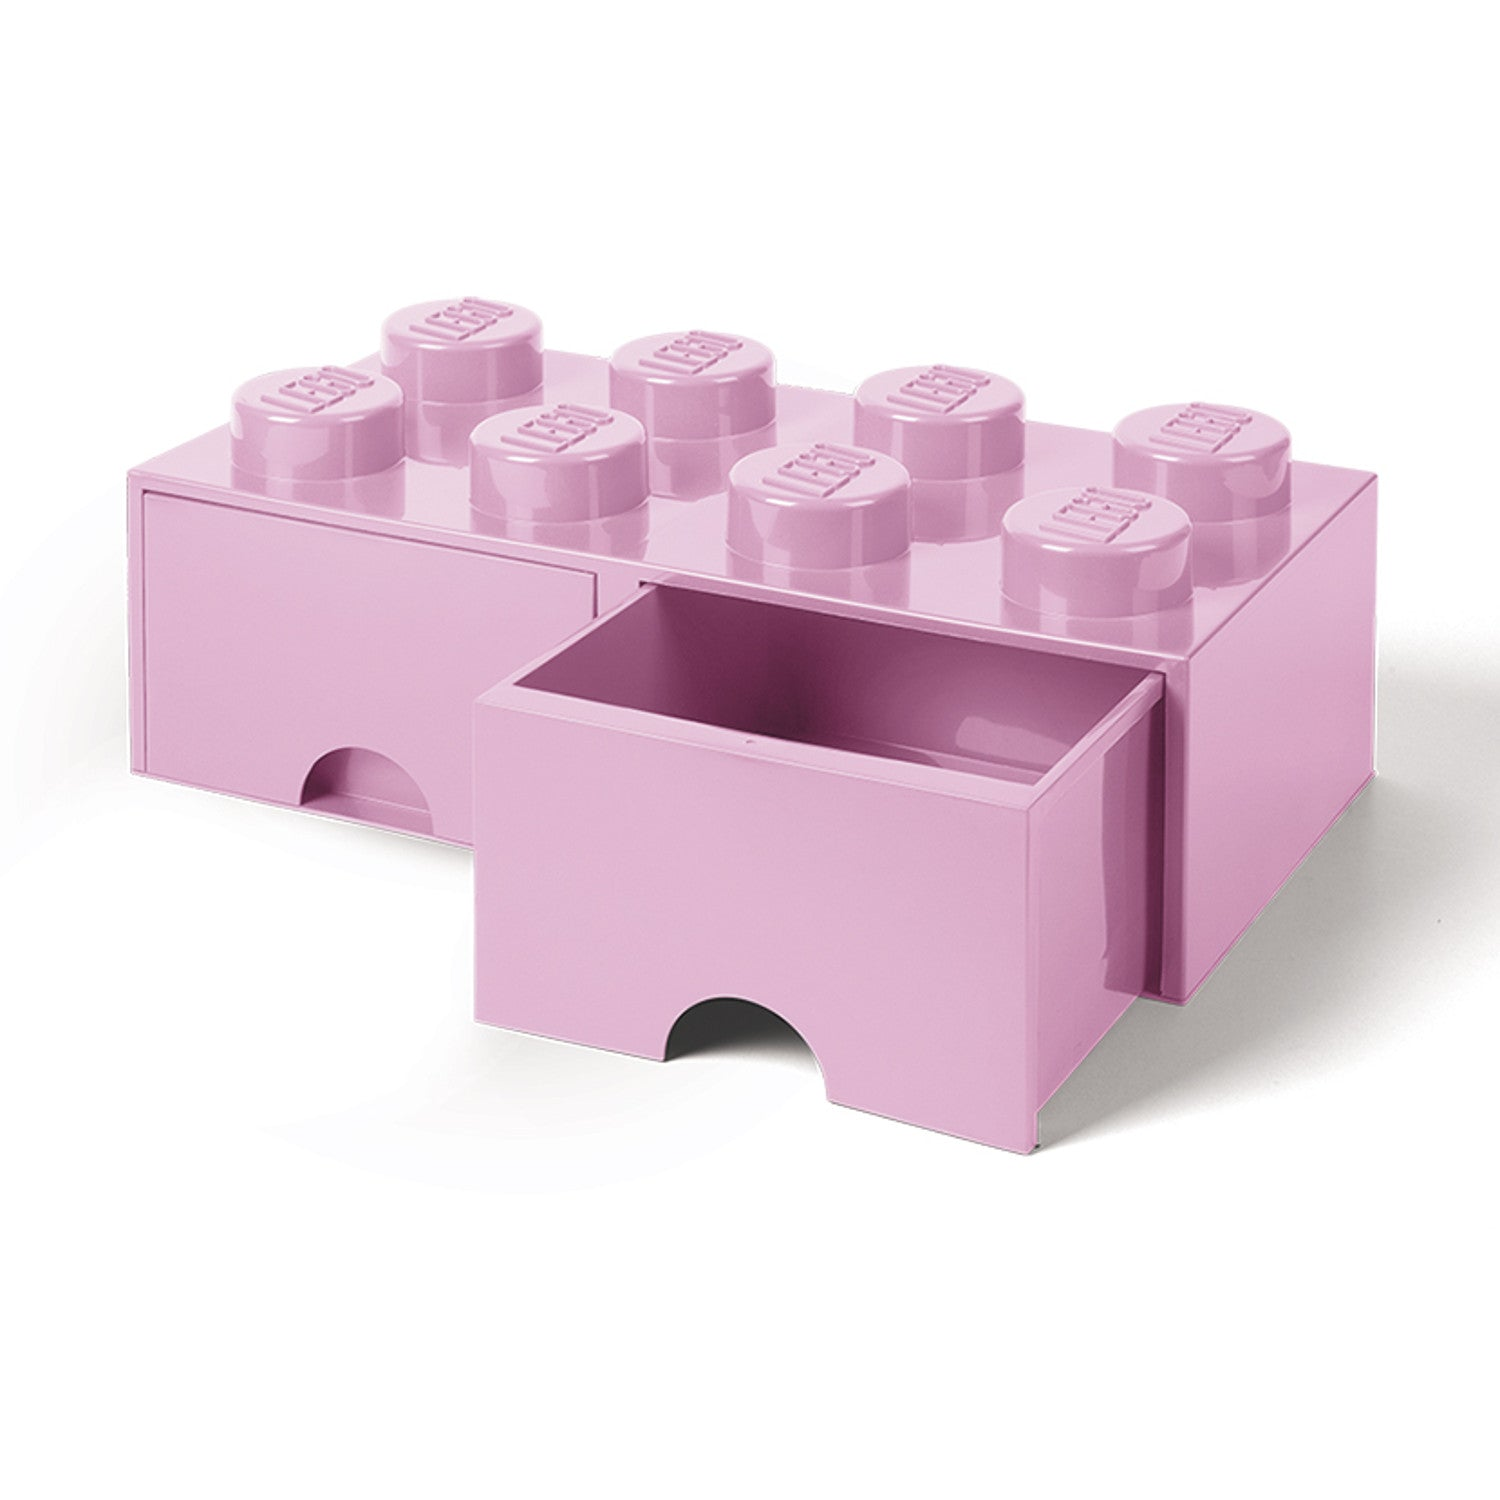 Superbe Lego Storage Brick Drawer 8 Pale Pink